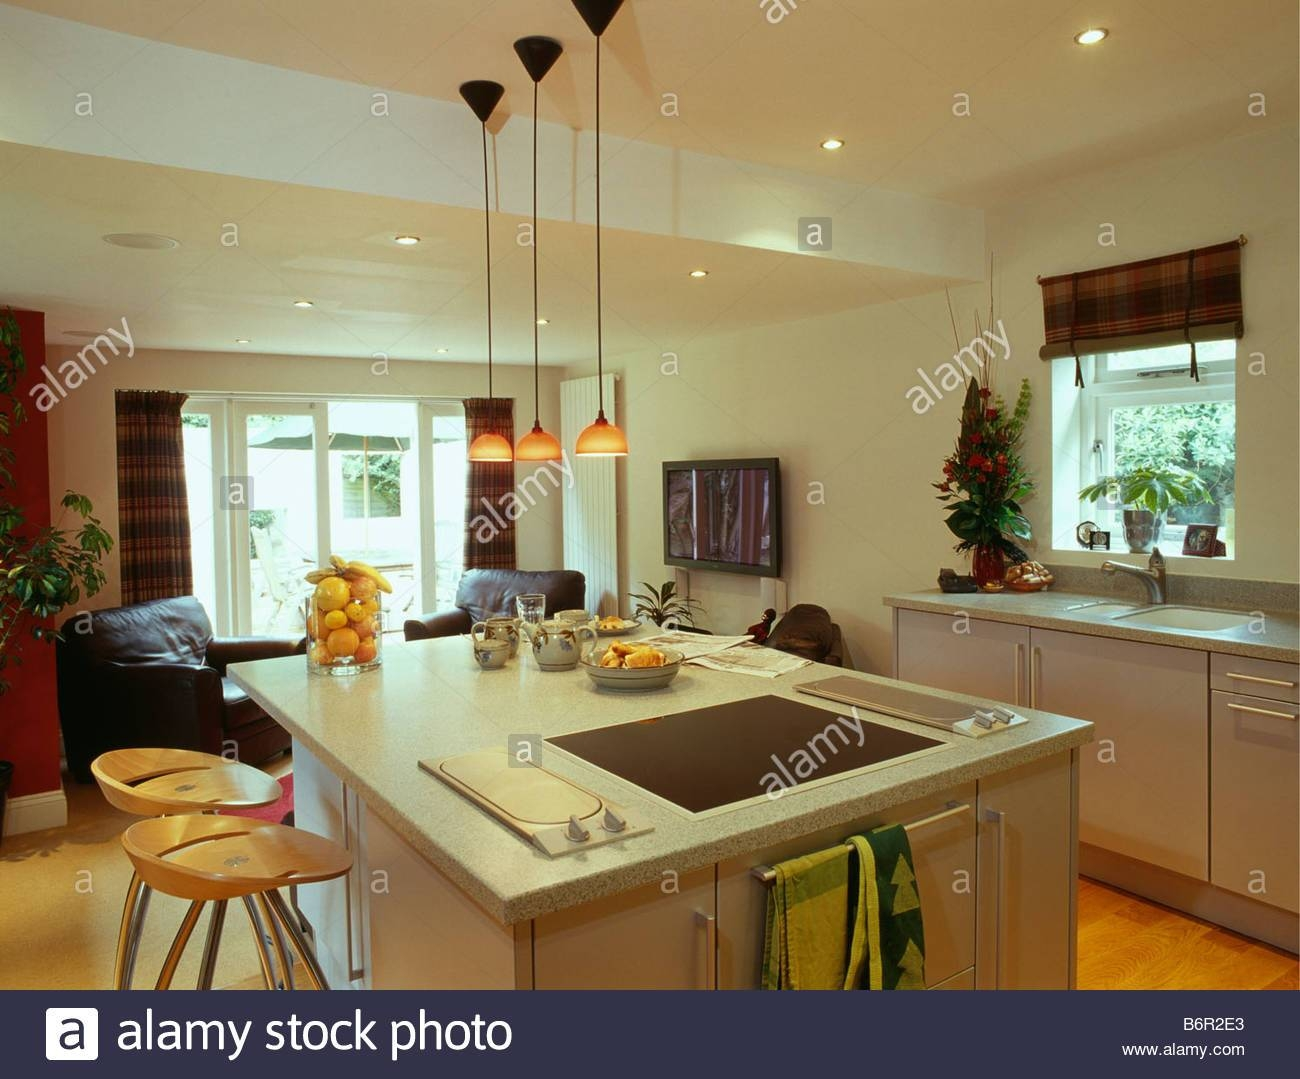 Pendant Lights In Kitchen Stock Photos & Pendant Lights In Kitchen Inside Orange Pendant Lights For Kitchen (View 5 of 15)